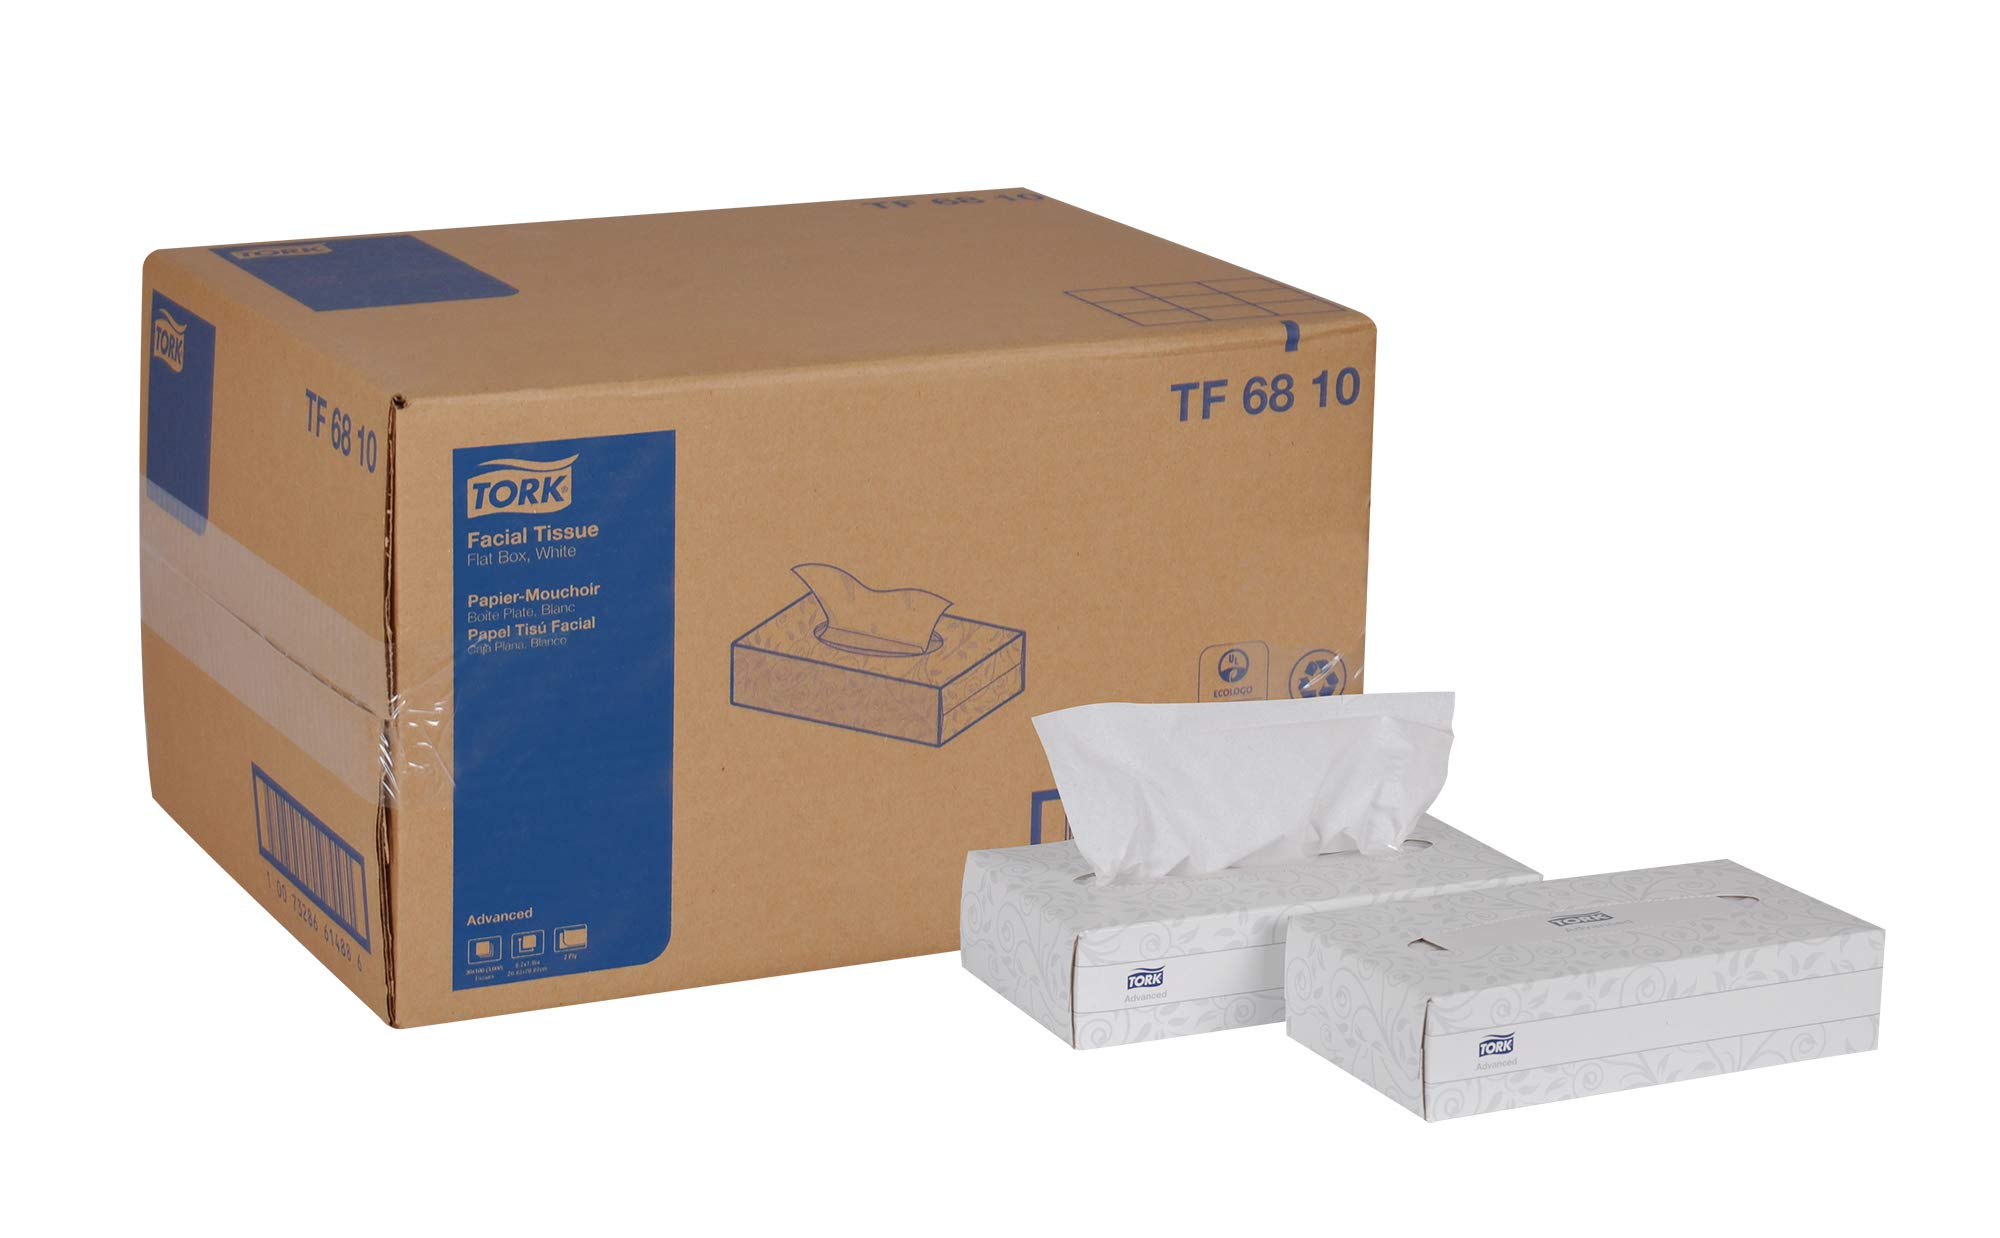 Tork Advanced TF6810 Facial Tissue, Flat Box, 2-Ply, 8.2'' Width x 7.9'' Length, White (Case of 30 Boxes, 100 per Box, 3,000 Sheets) by Tork